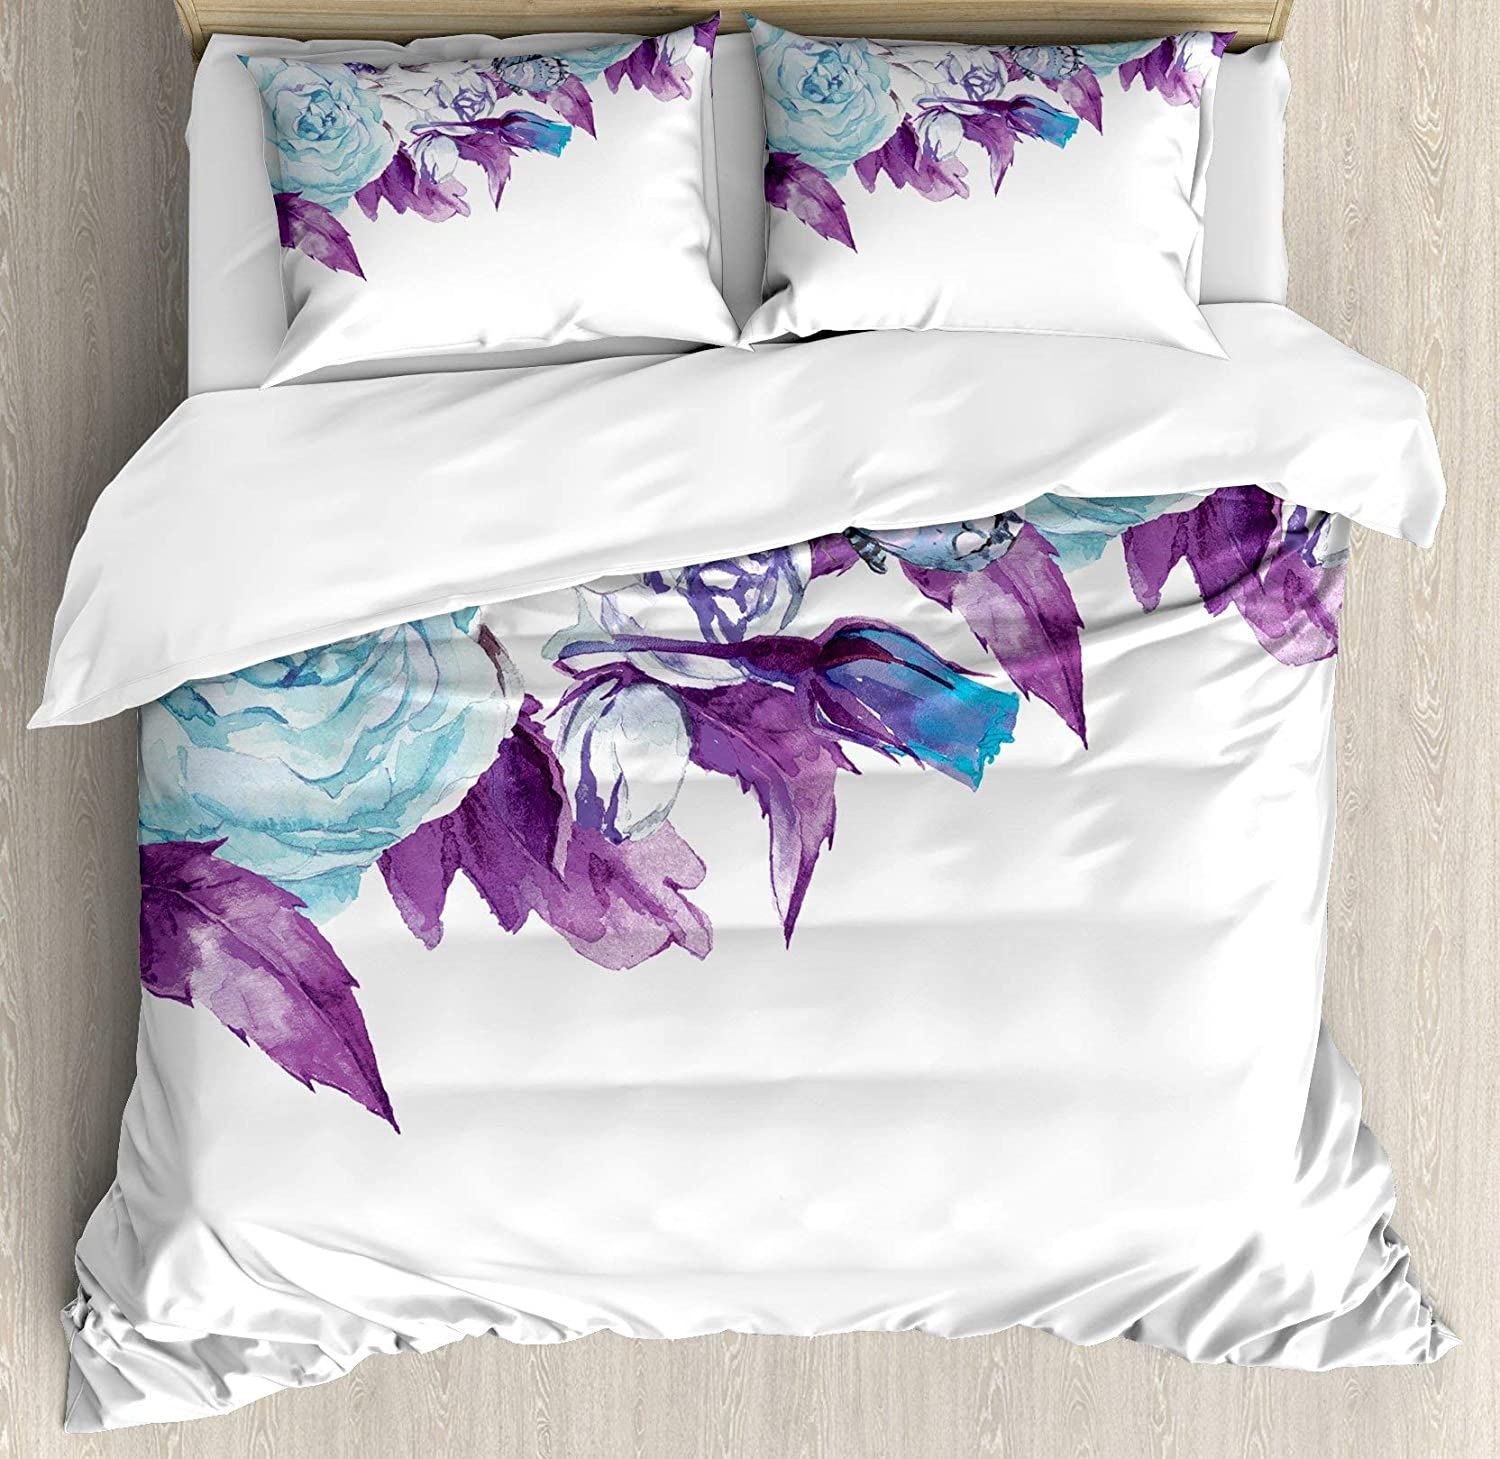 Multi 2 Queen BULING Vintage 4pc Bedding Set Twin Size, Stylish Evil Eye Bead Amulet Like Figures Cubical Rounded Dotted Floral Lightweight Microfiber Duvet Cover Set, Almond Green Apricot Mustard